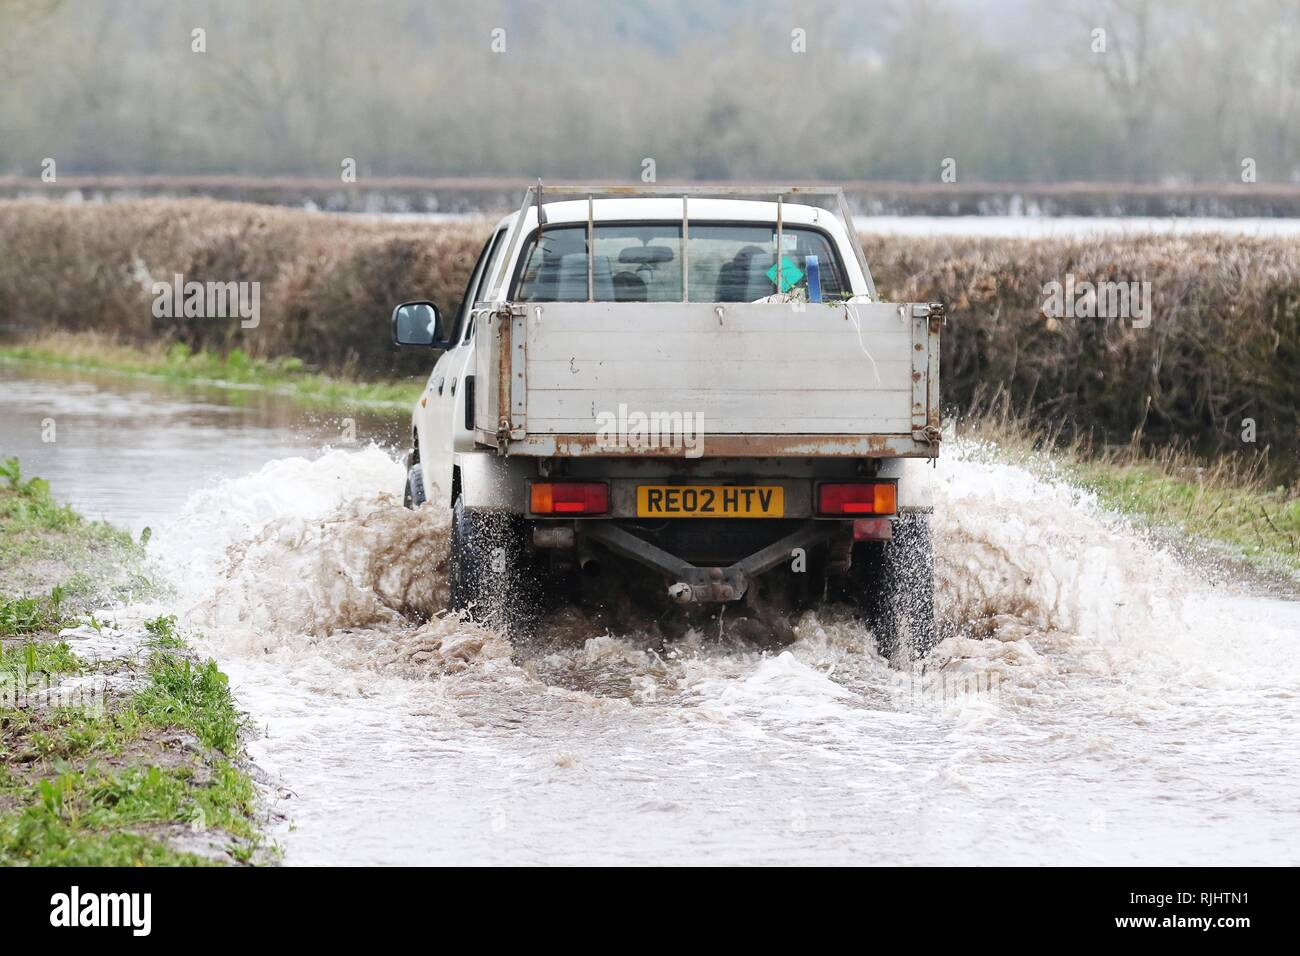 Flooding on lanes around the River Severn, near Gloucester  Picture by Antony Thompson - Thousand Word Media, NO SALES, NO SYNDICATION. Contact for mo - Stock Image